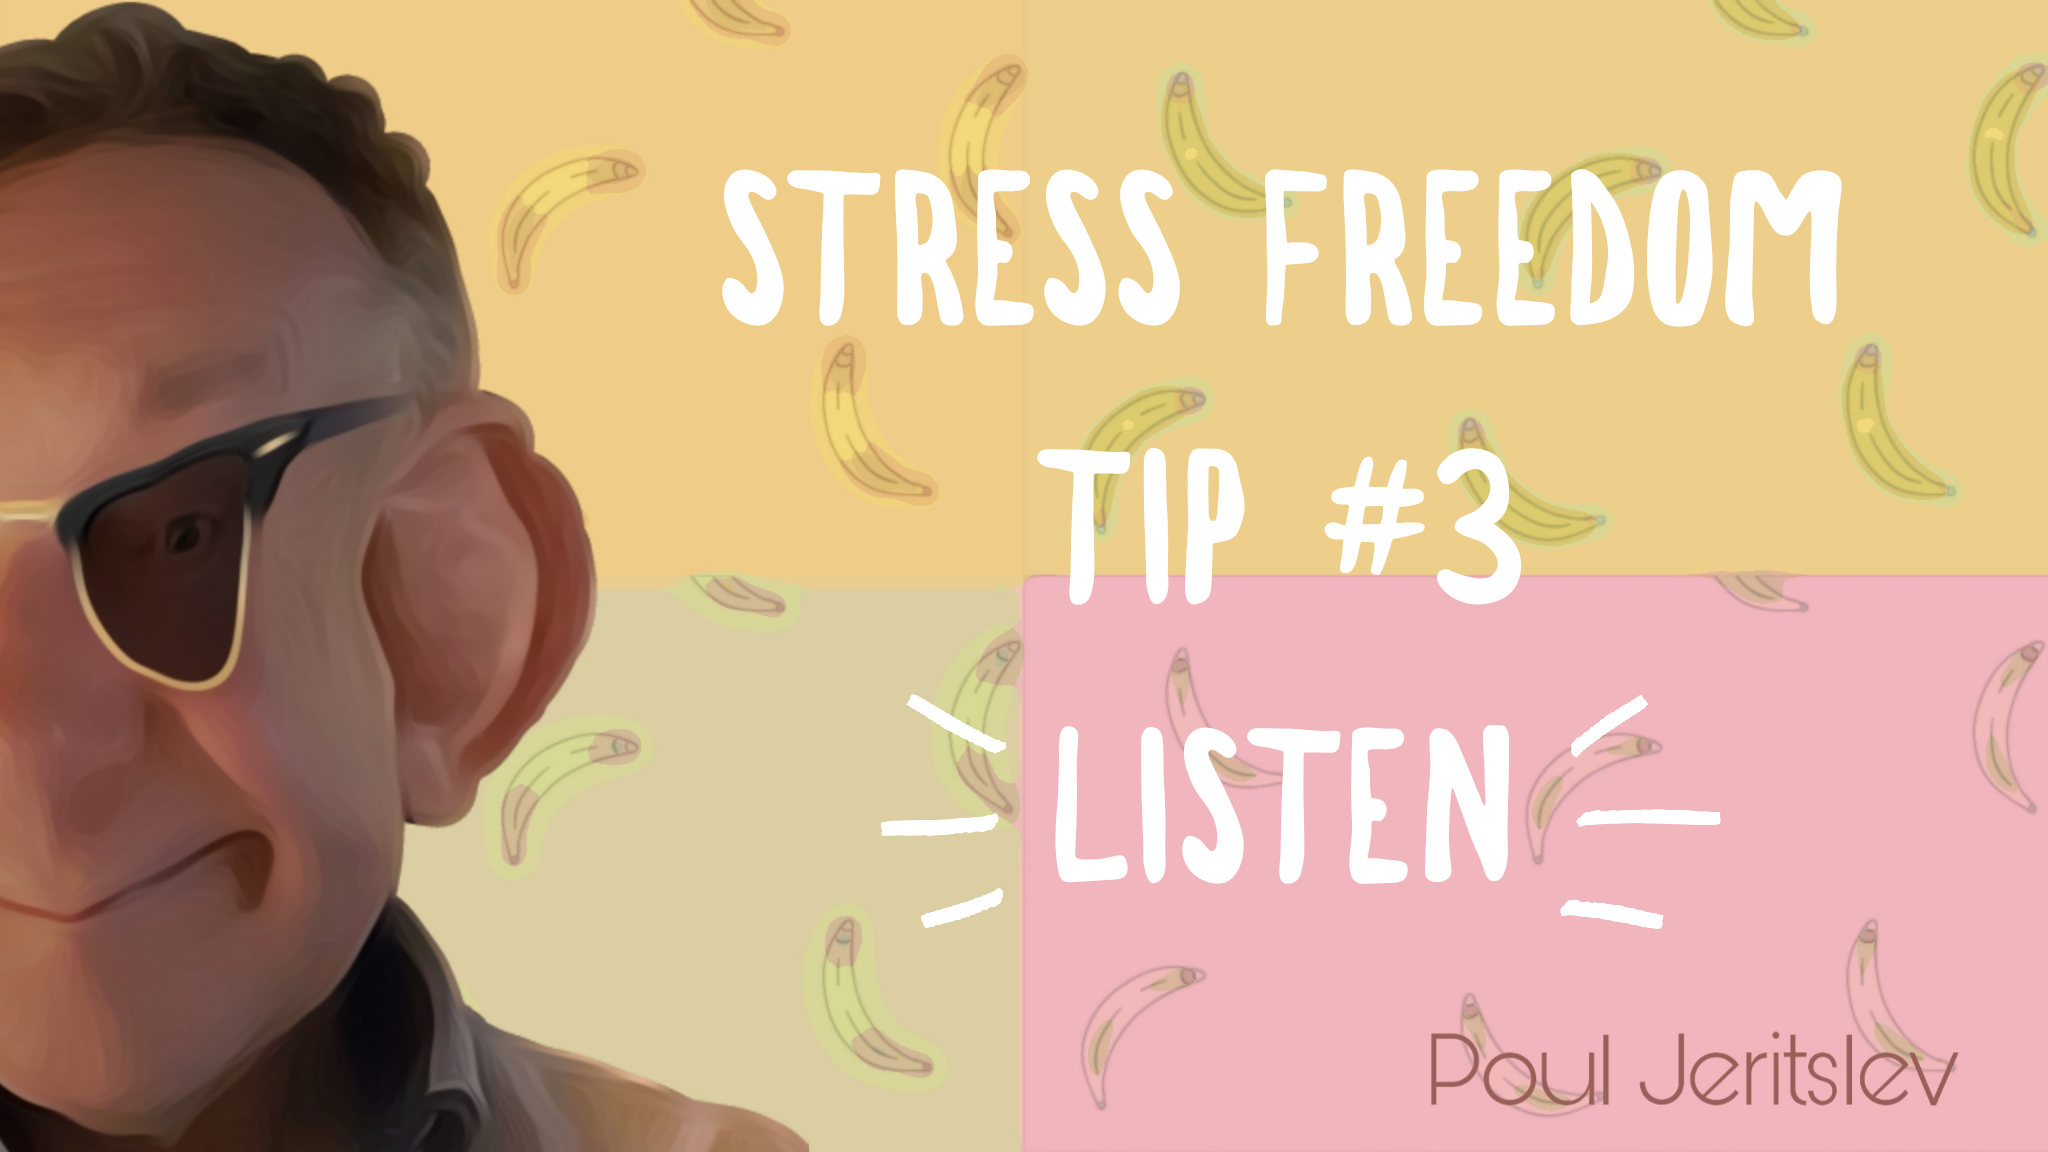 Stress Freedom TIP #3